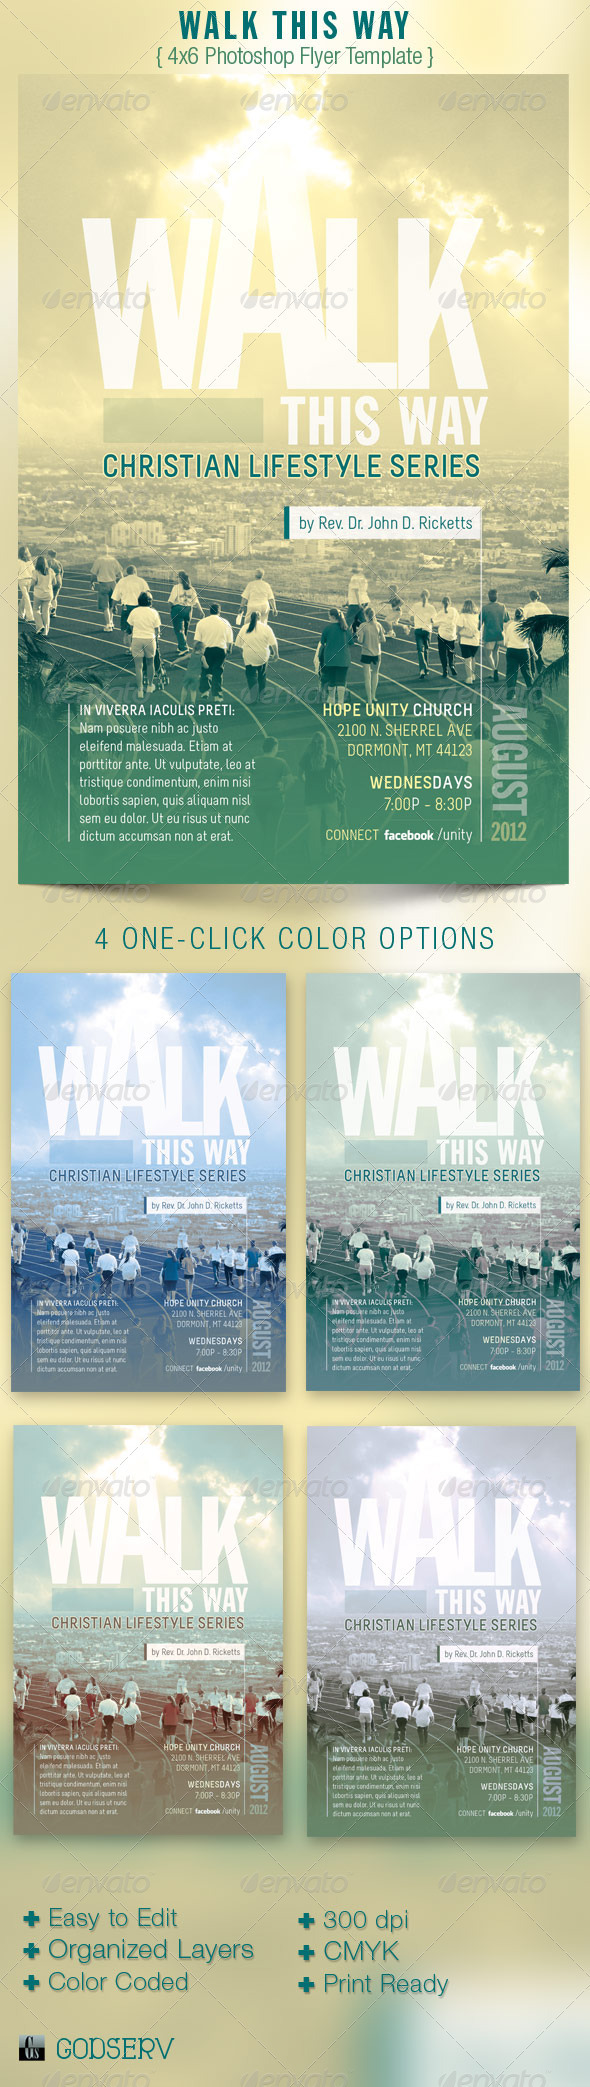 Walk This Way Church Flyer Template - Church Flyers